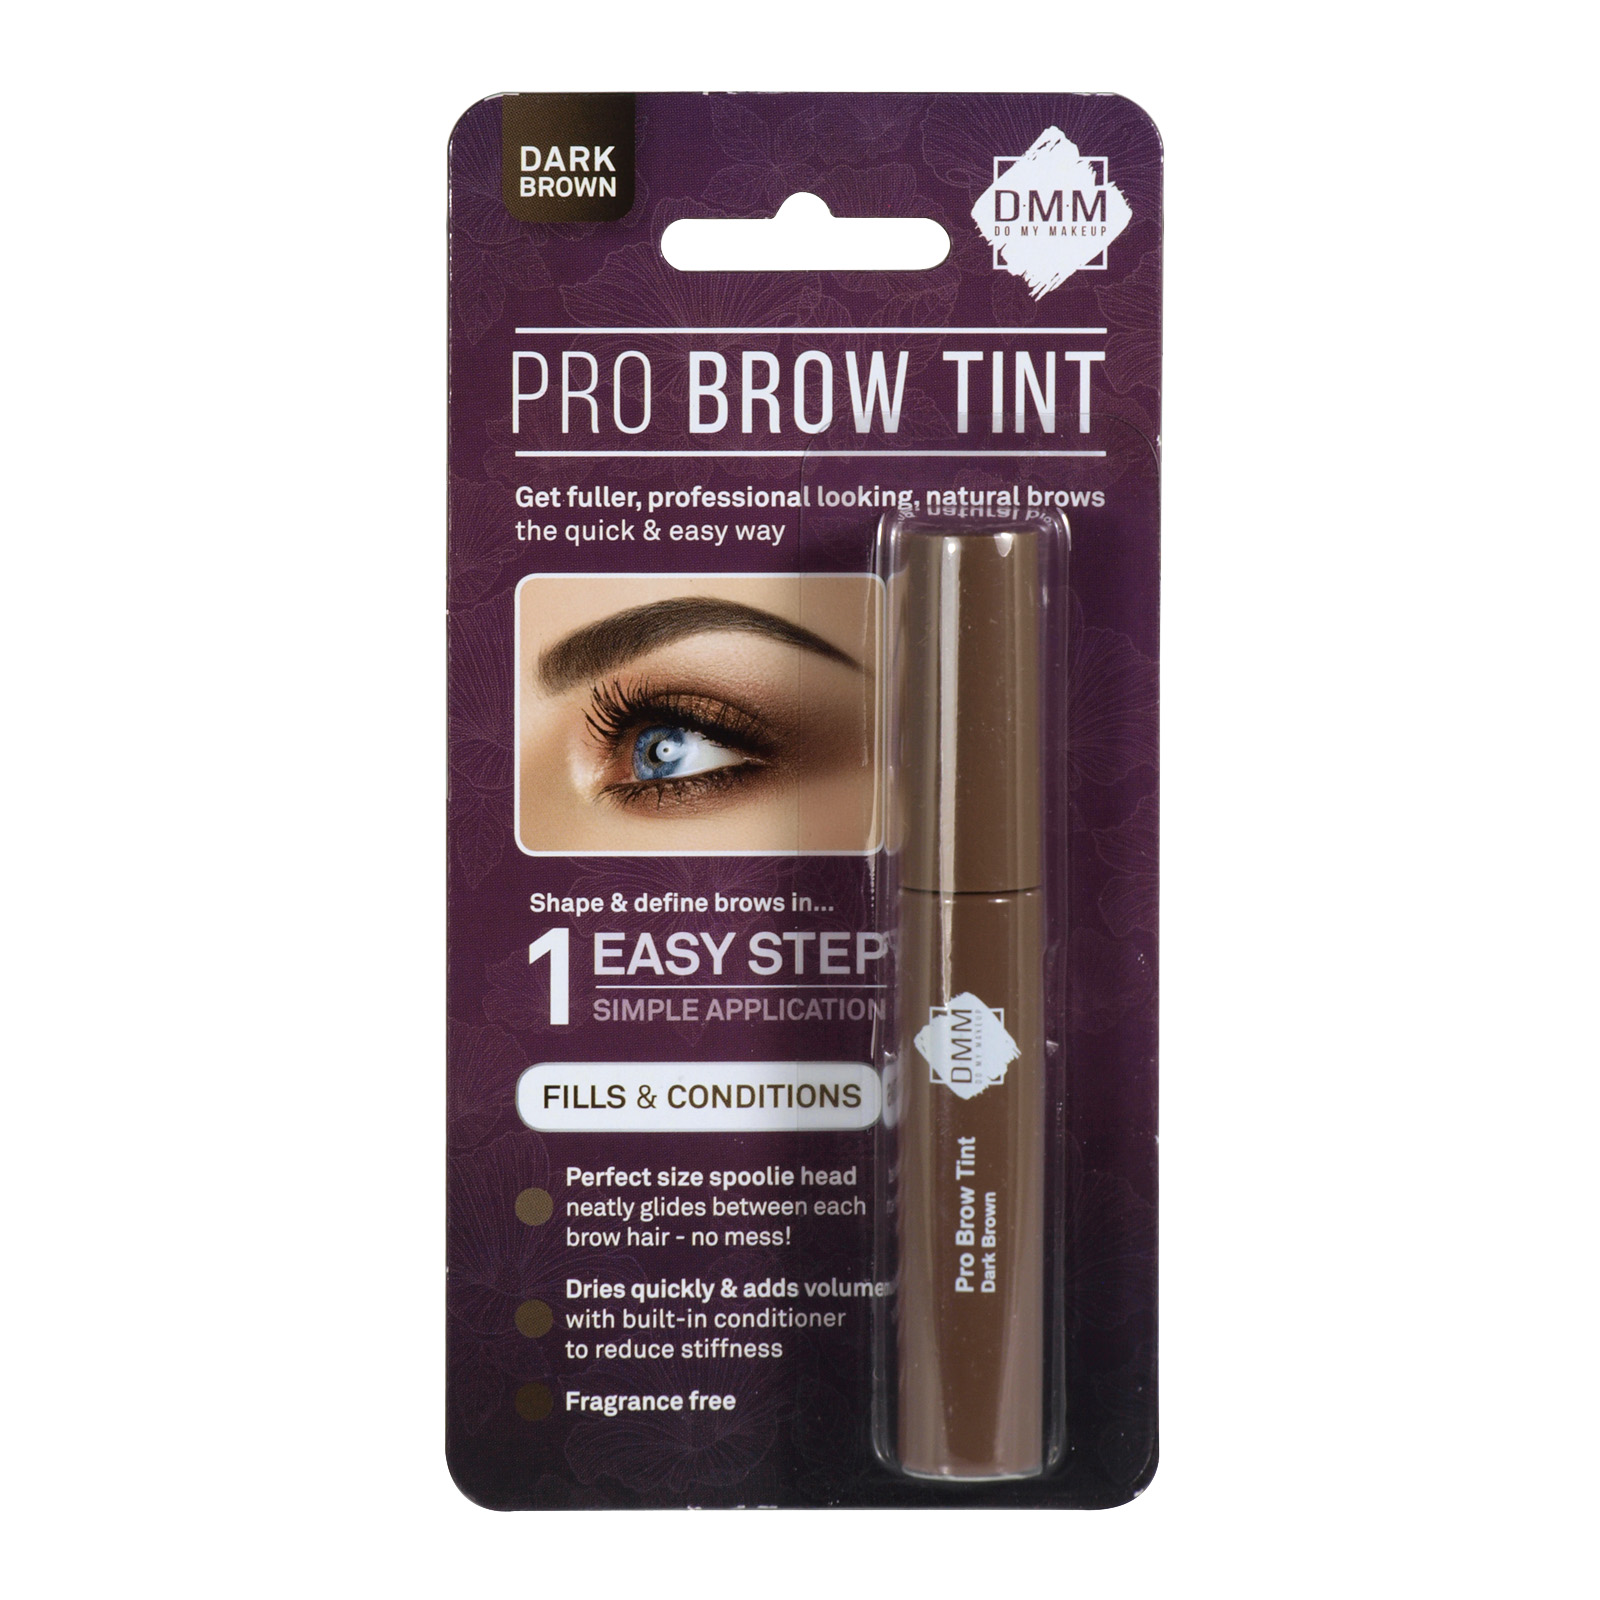 DMM PRO BROW TINT MIX DARK BROWN